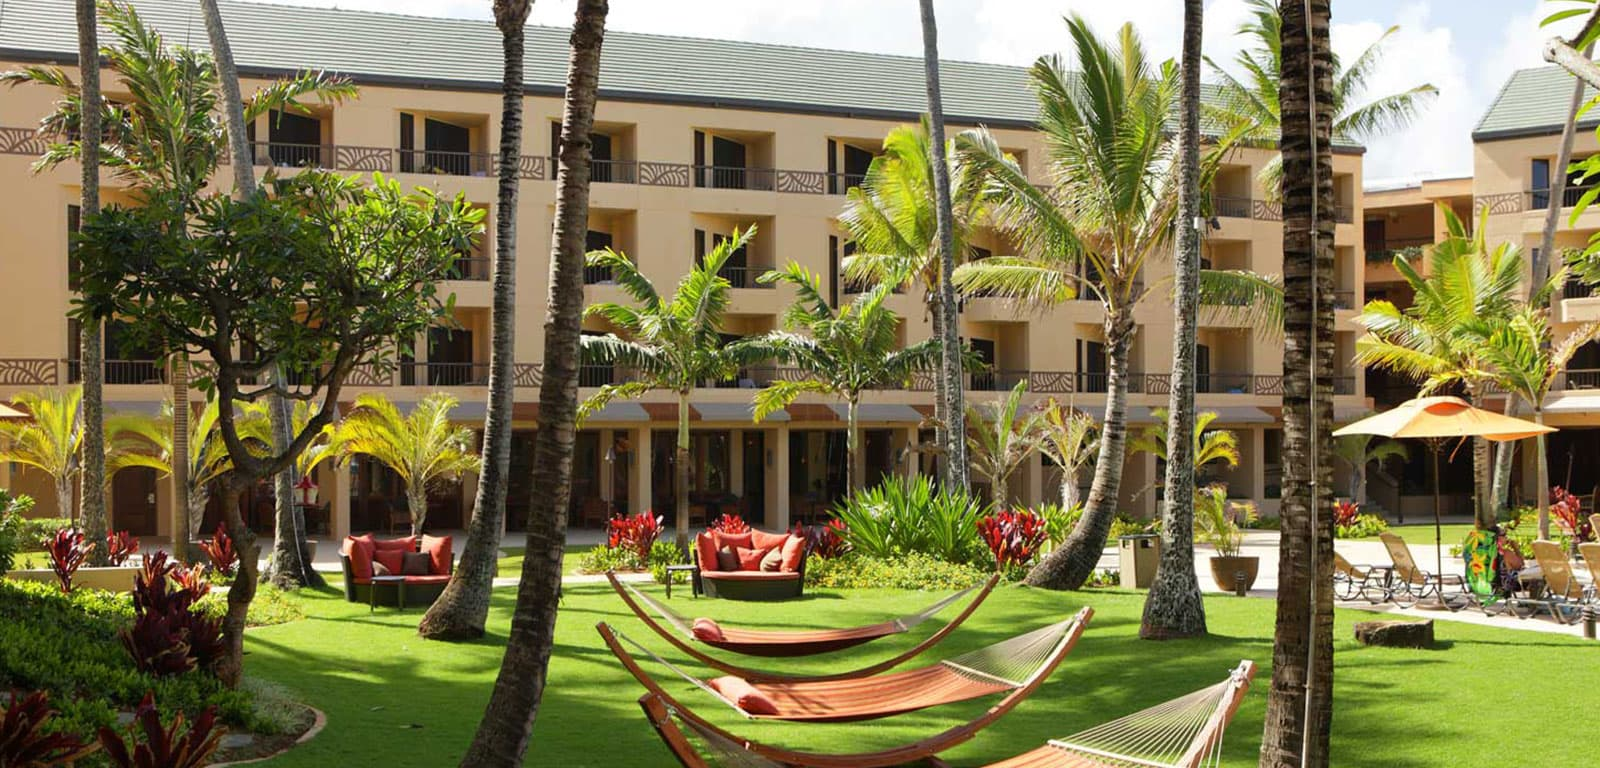 Our Courtyard at Marriott Kaua'i Coconut Beach